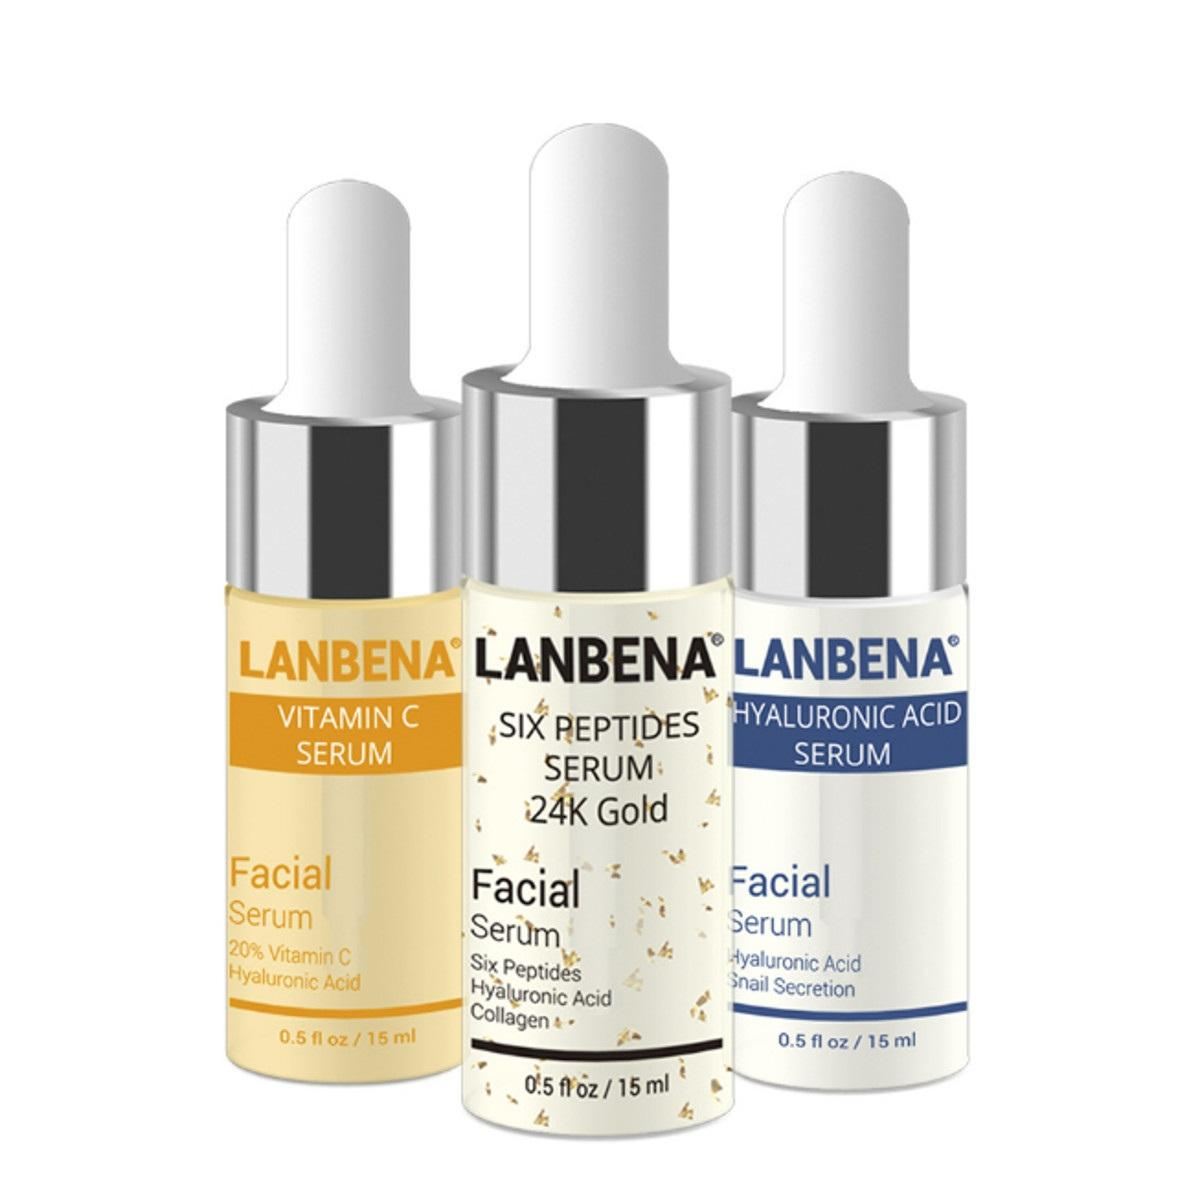 LANBENA 3pcs Hyaluronic Acid Serum Six Peptides Serum 24K Gold Anti-Aging Vitamin E